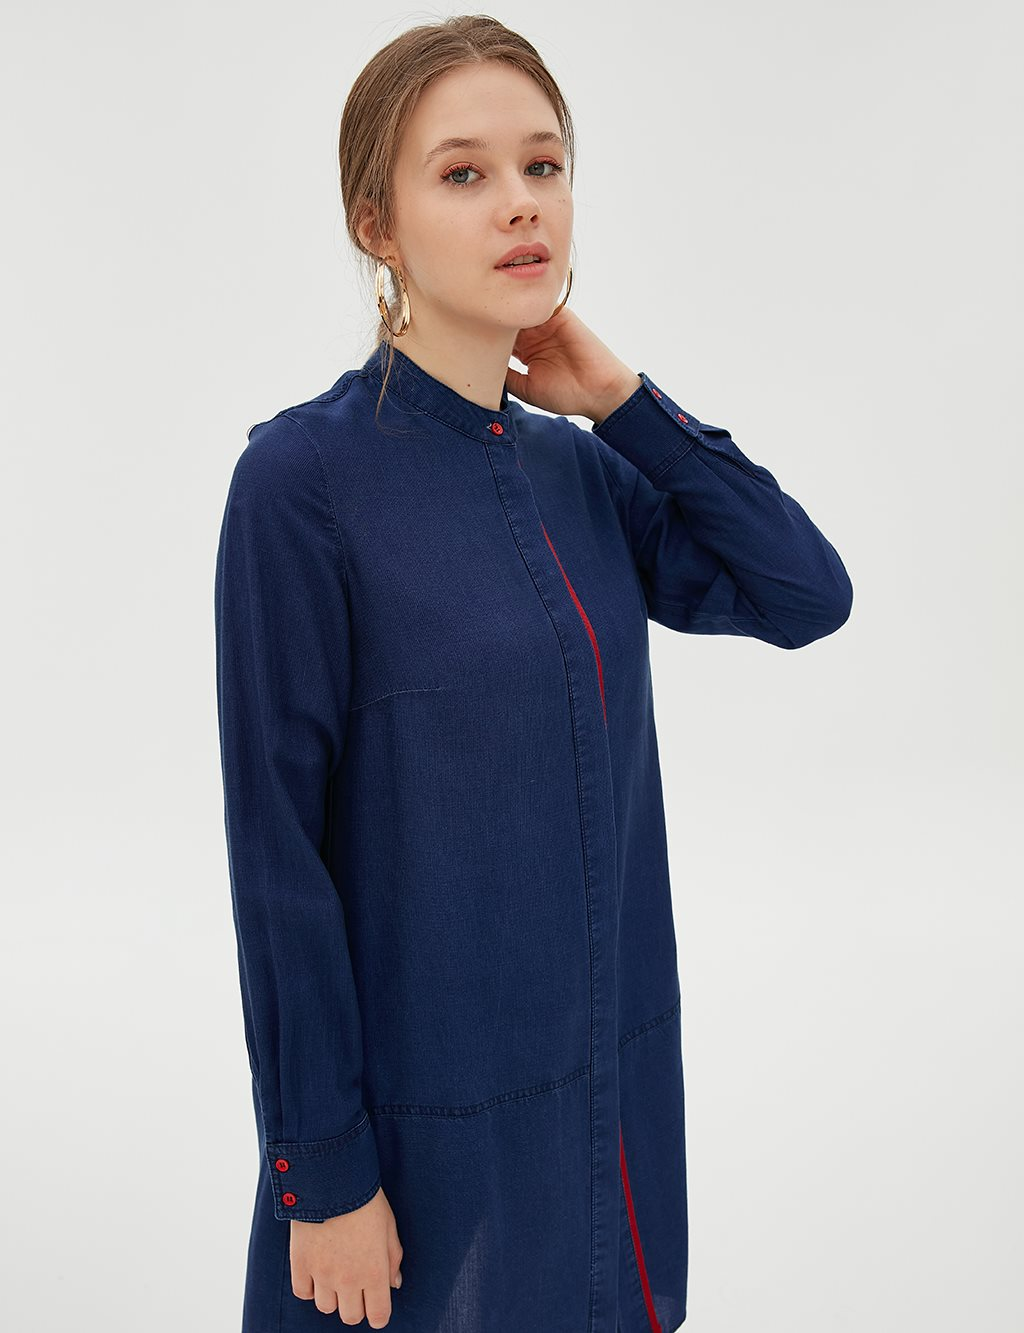 Collar Detailed Tunic B20 21049 Navy